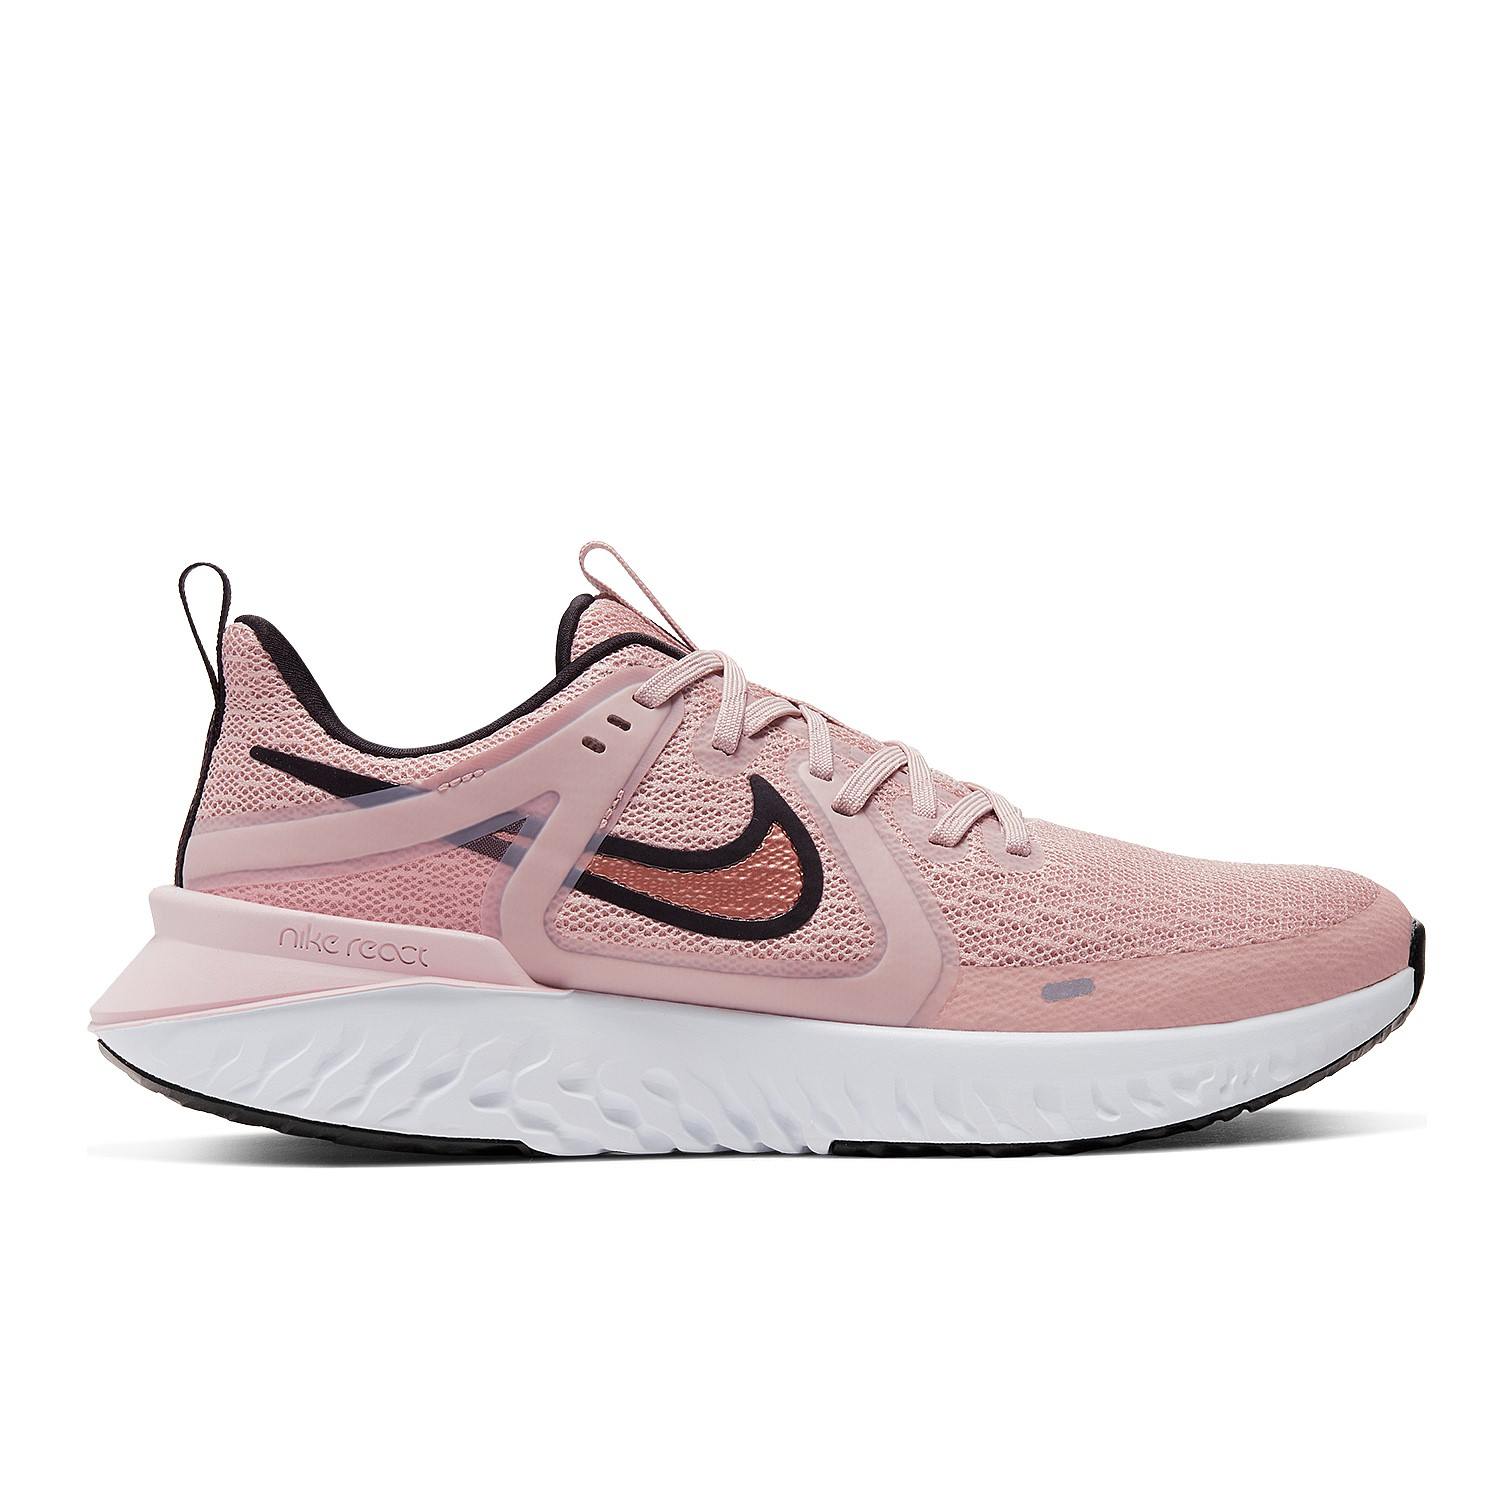 Stirling Sports - Legend React 2 Womens